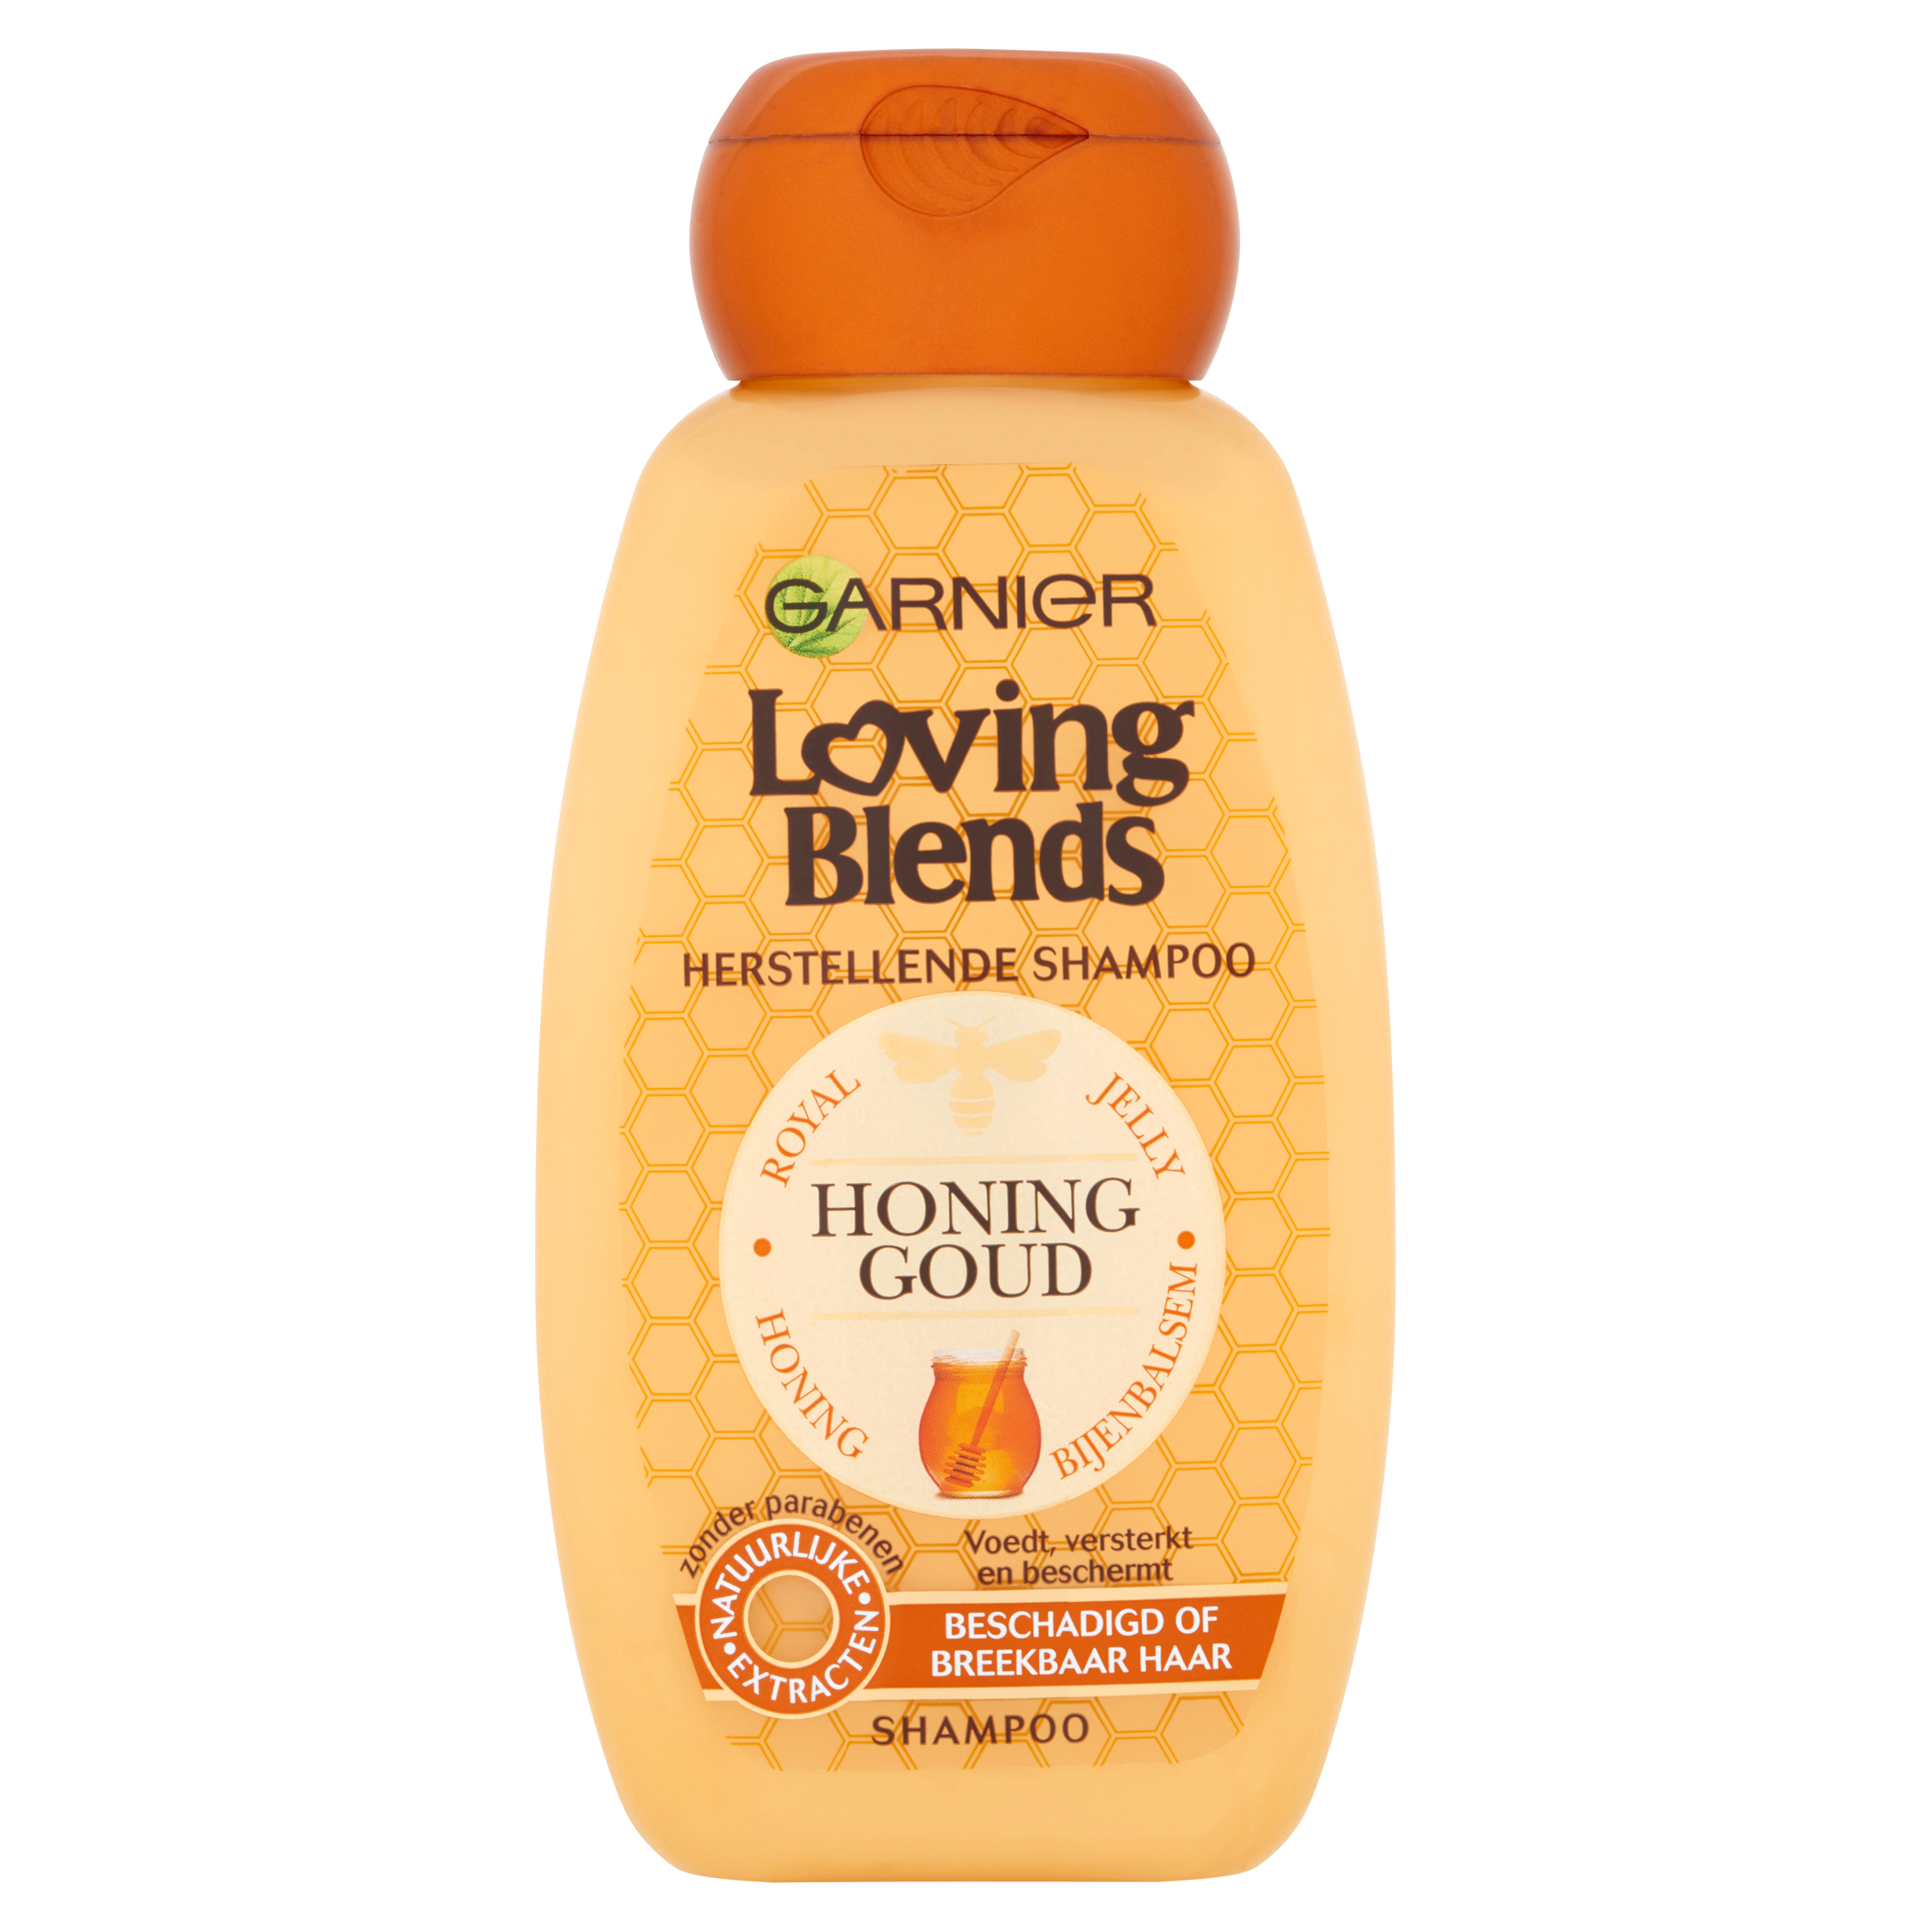 Garnier Loving Blends Herstellende Shampoo Honing Goud 250 ml